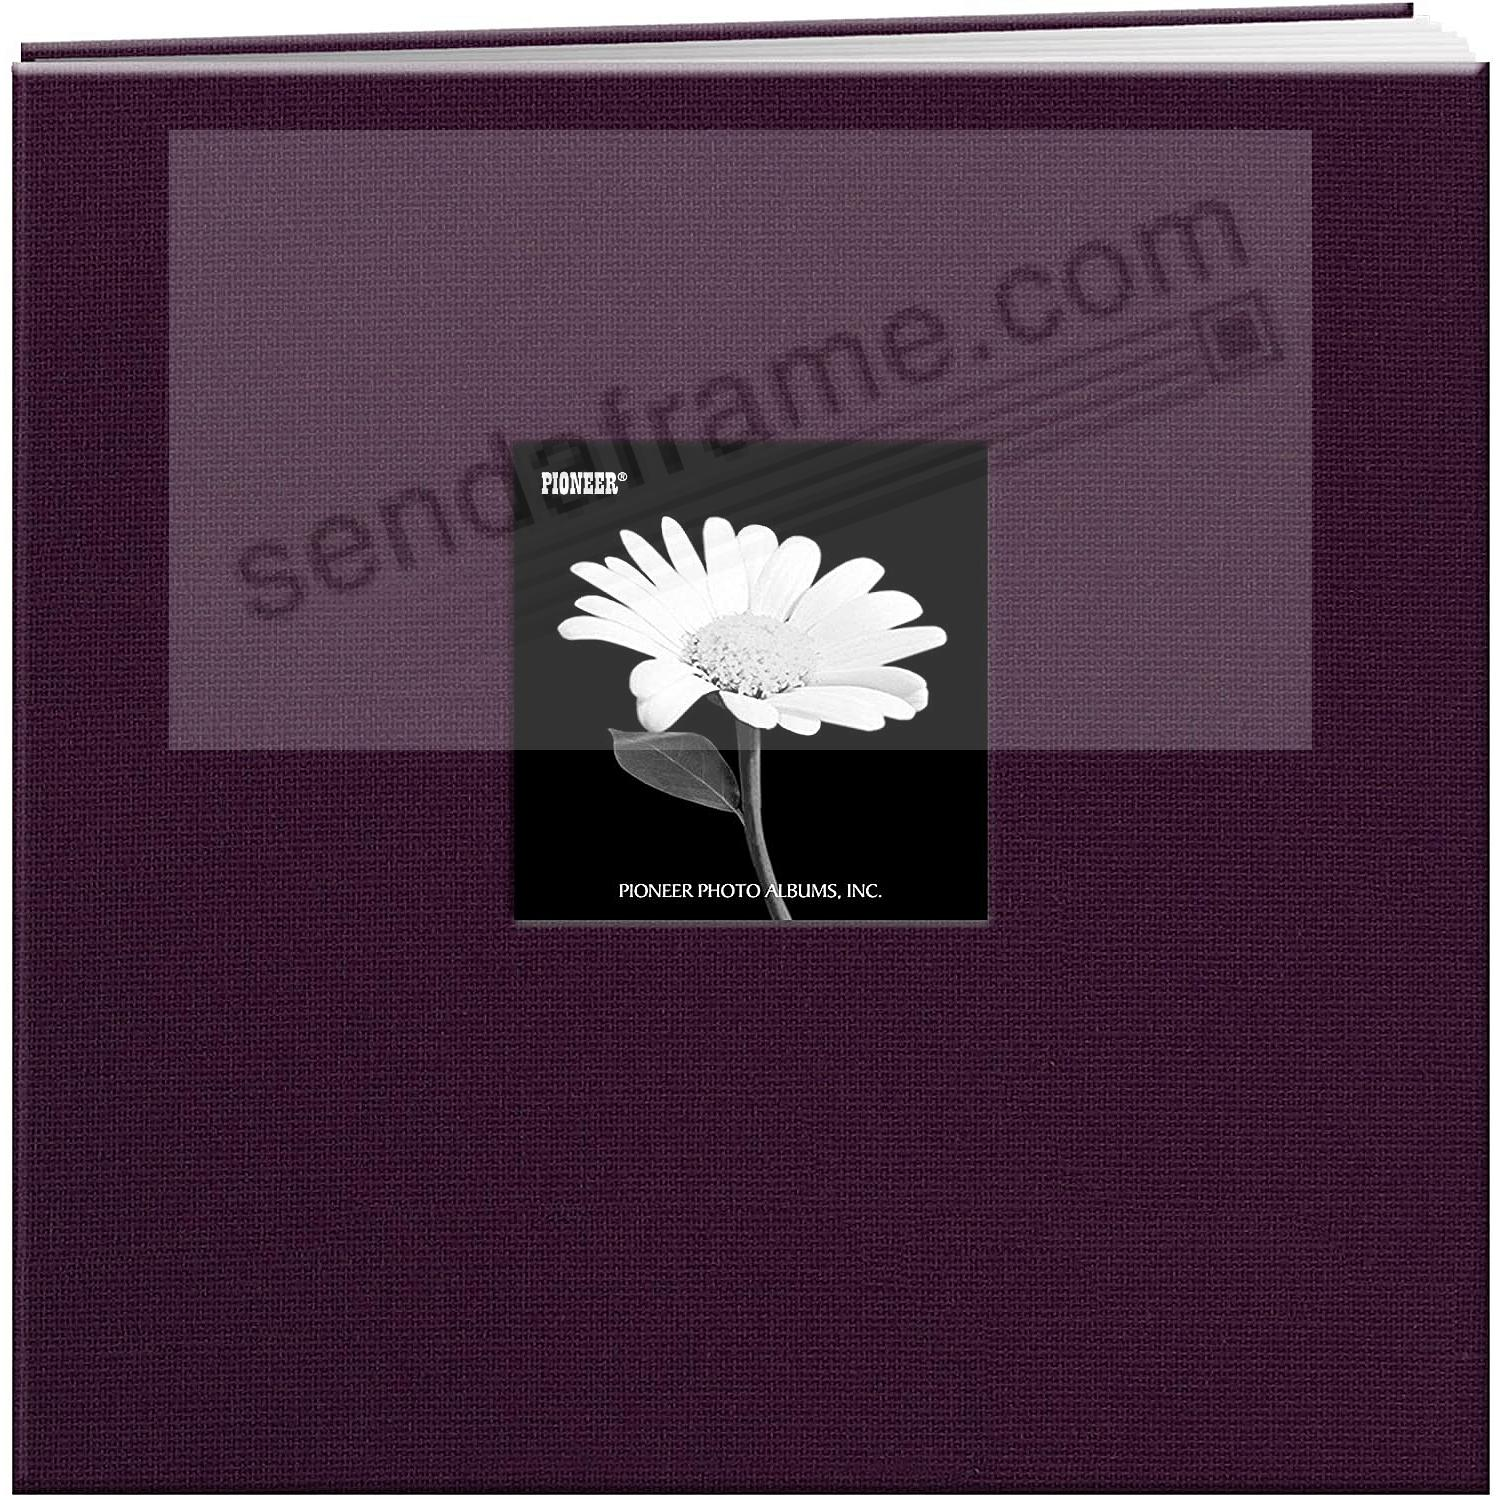 SWEET-PLUM 12x12 Scrapbook album by Pioneer®